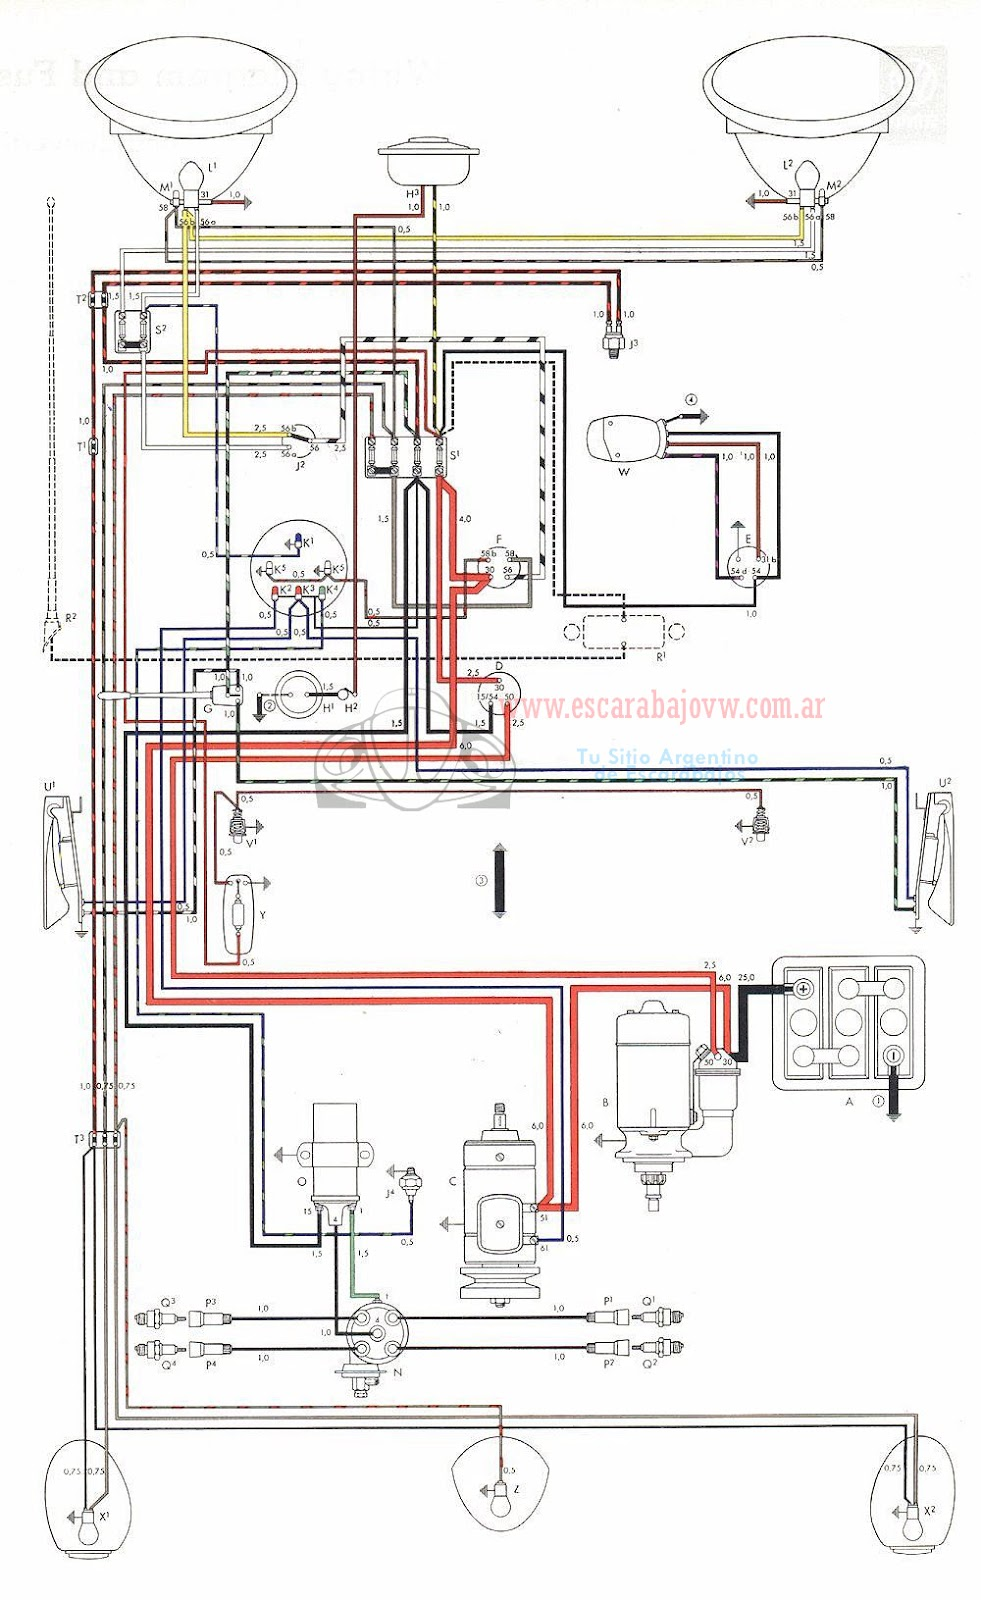 2012 chevrolet sonic wiring diagram 2014 chevrolet